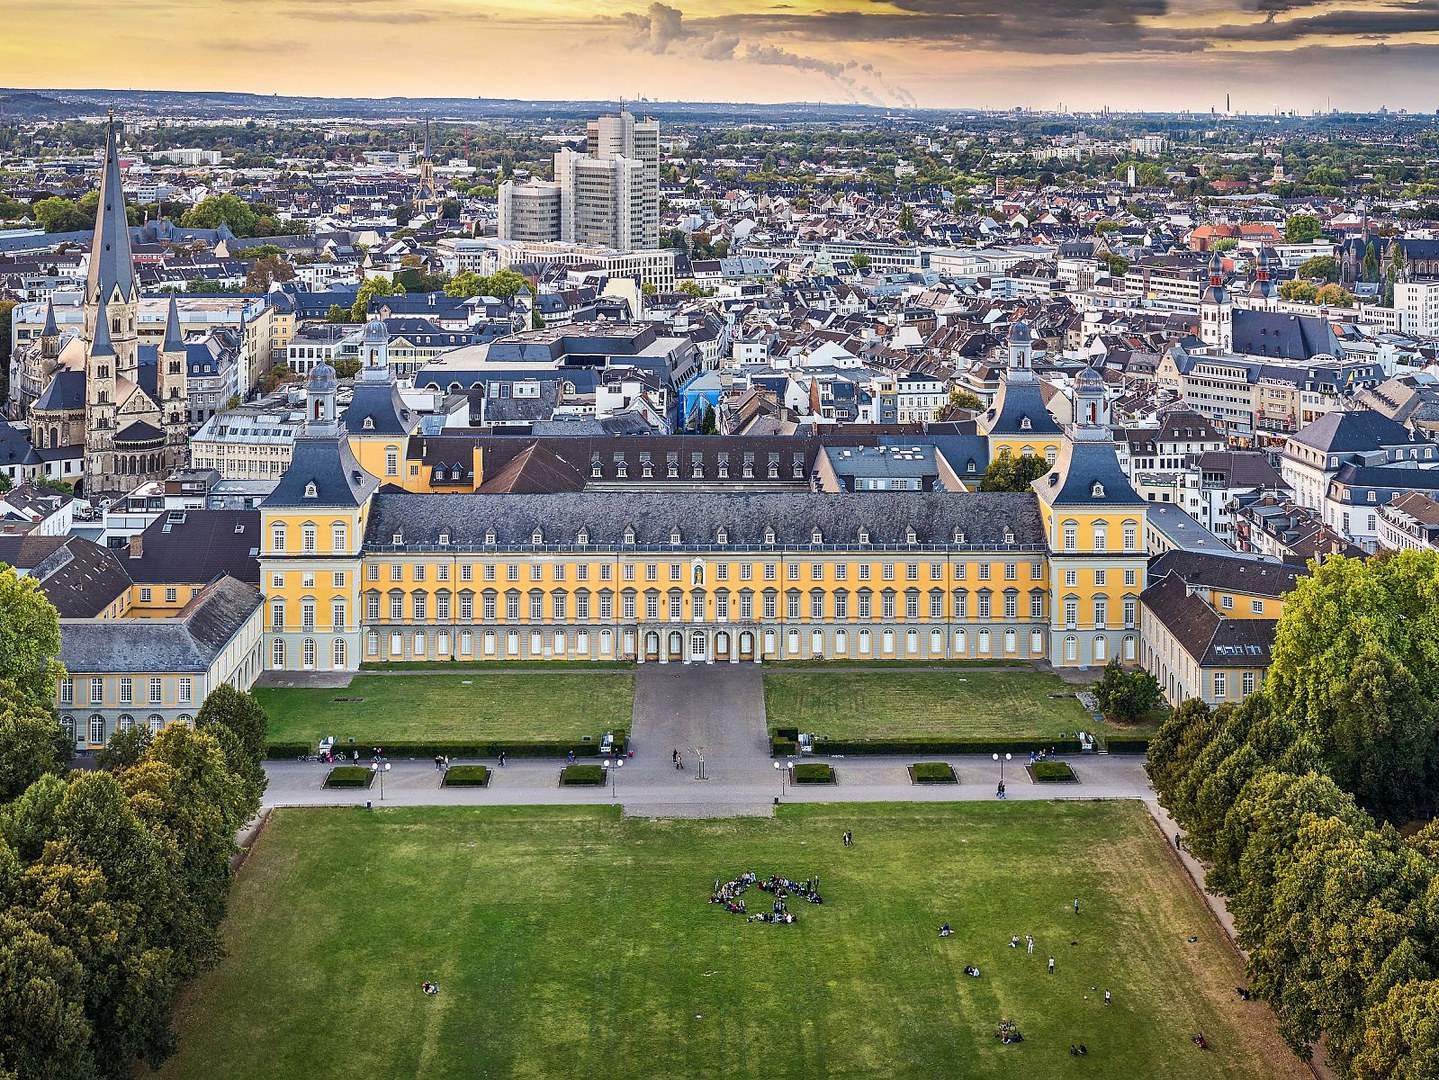 Areal view of the University of Bonn